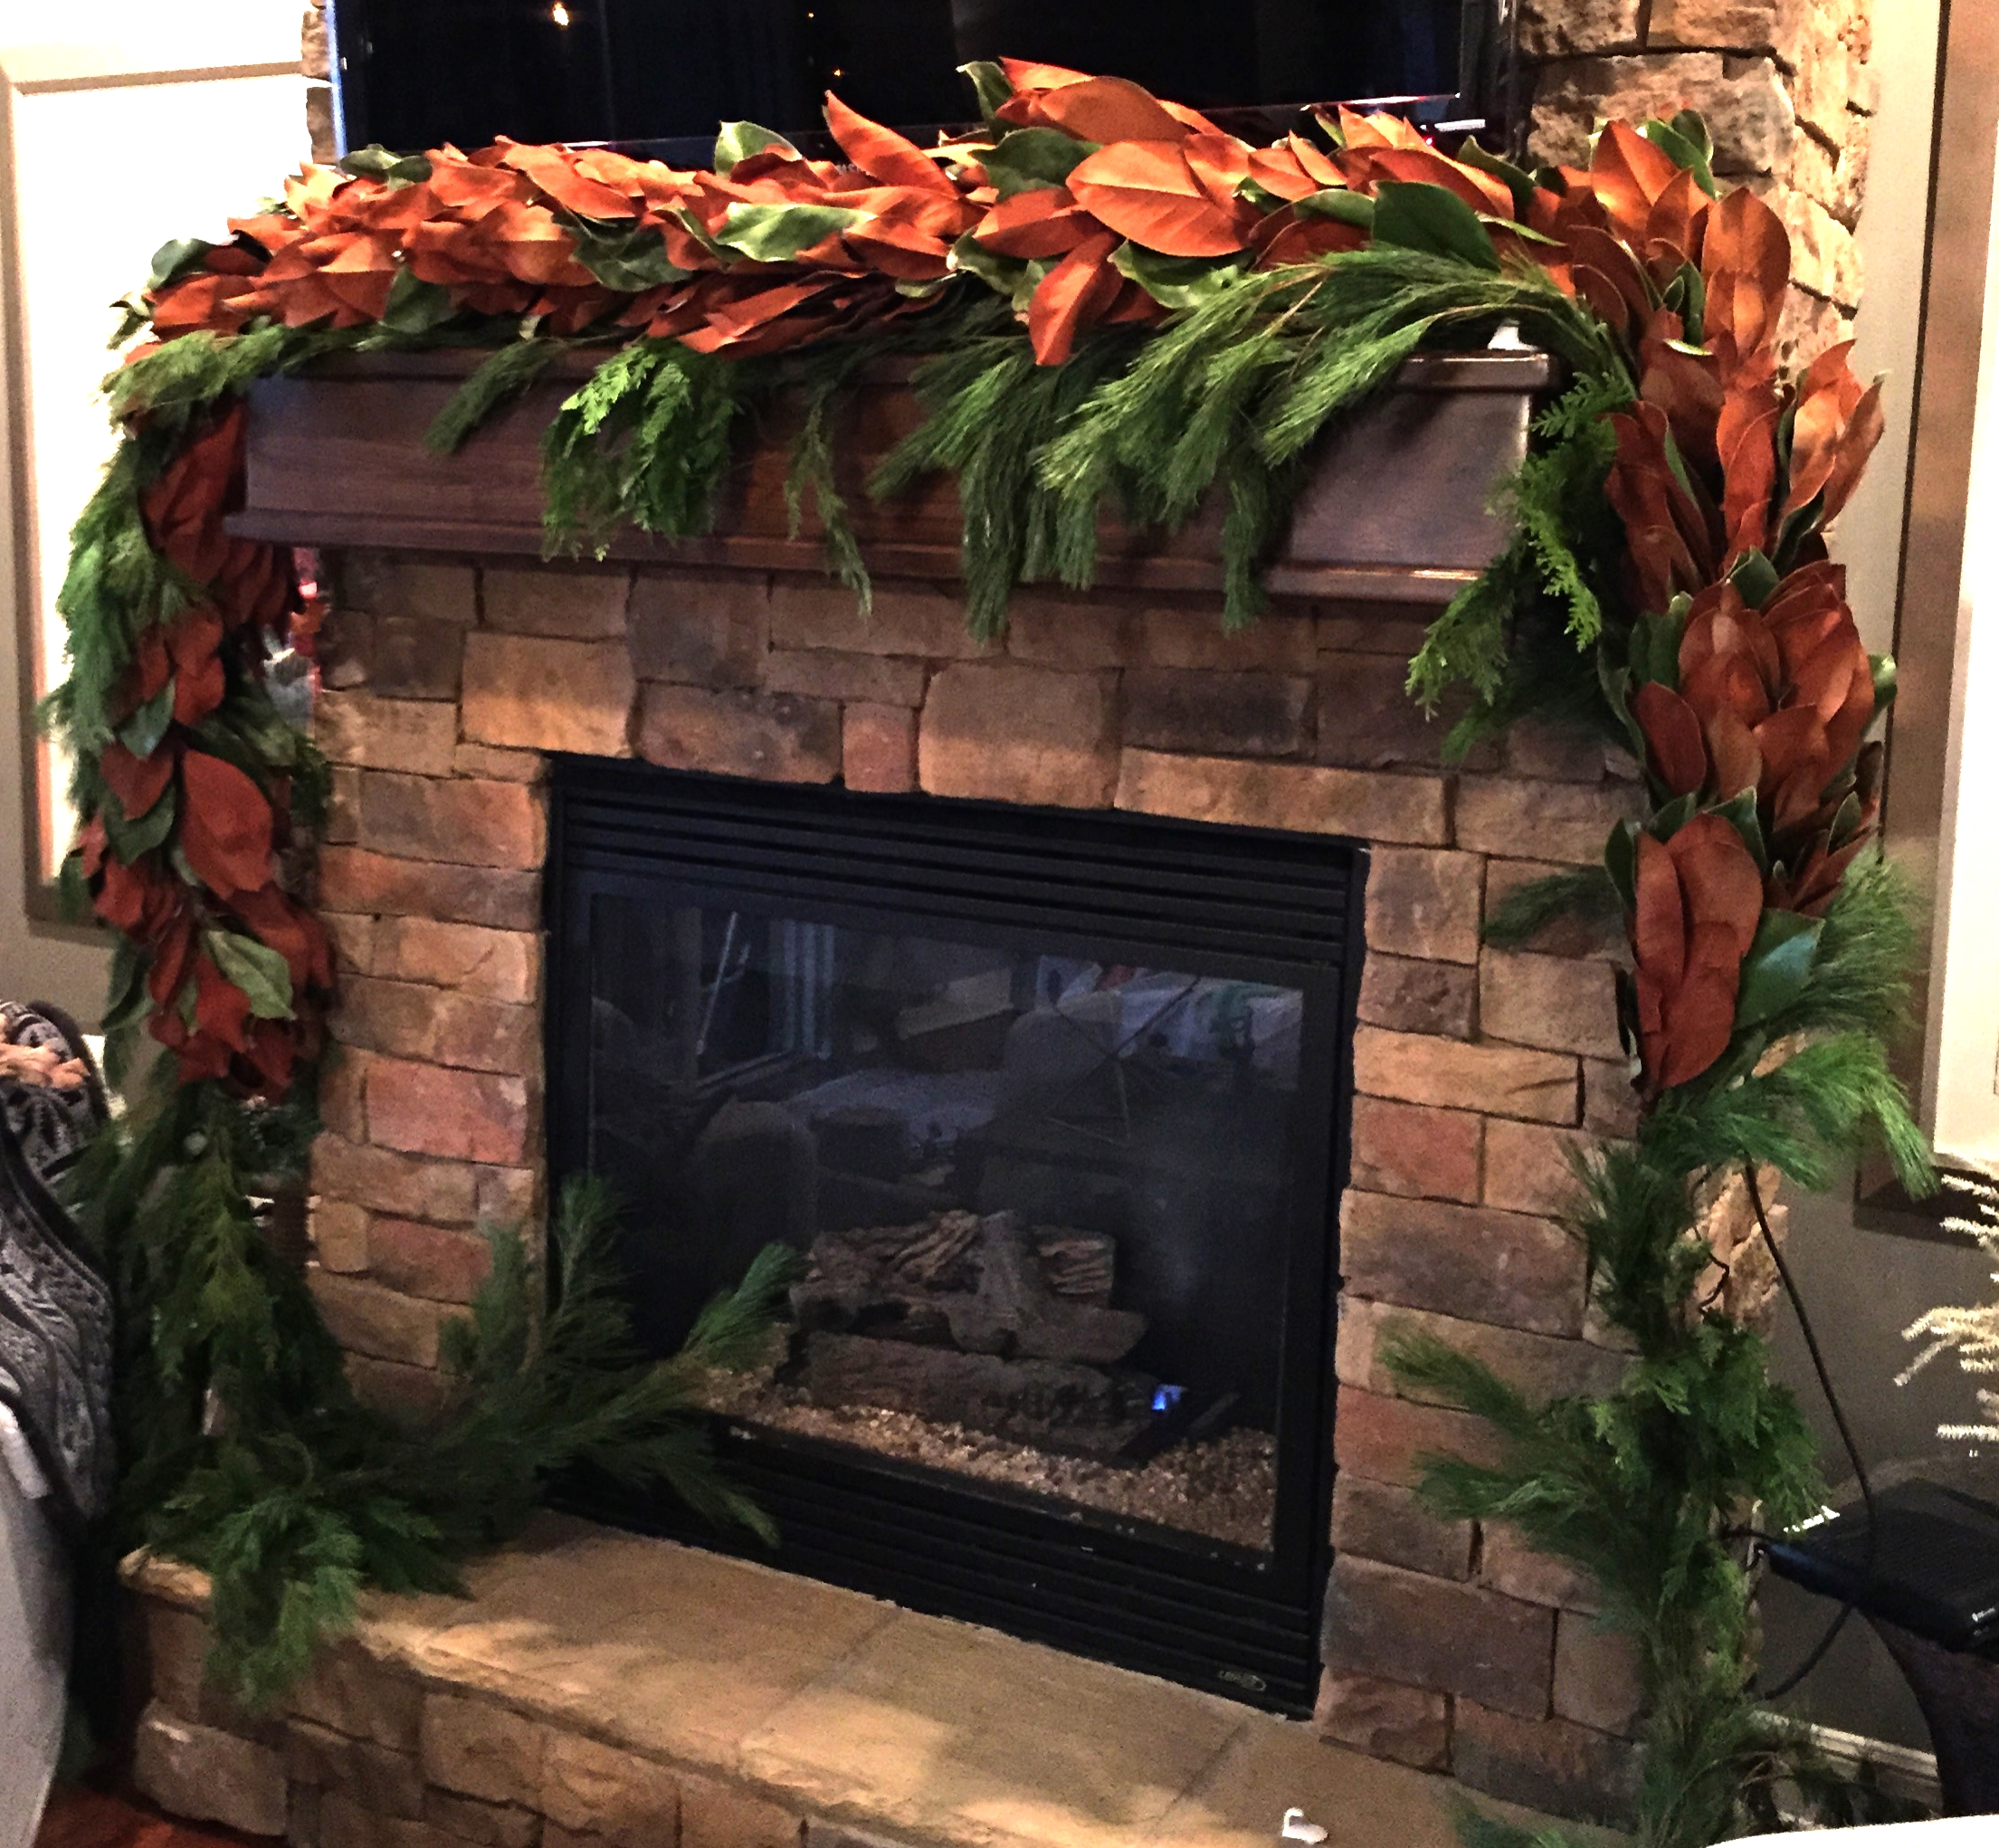 Here's a photo of my mantle in progress! Looks pretty good if I do say so myself ;)